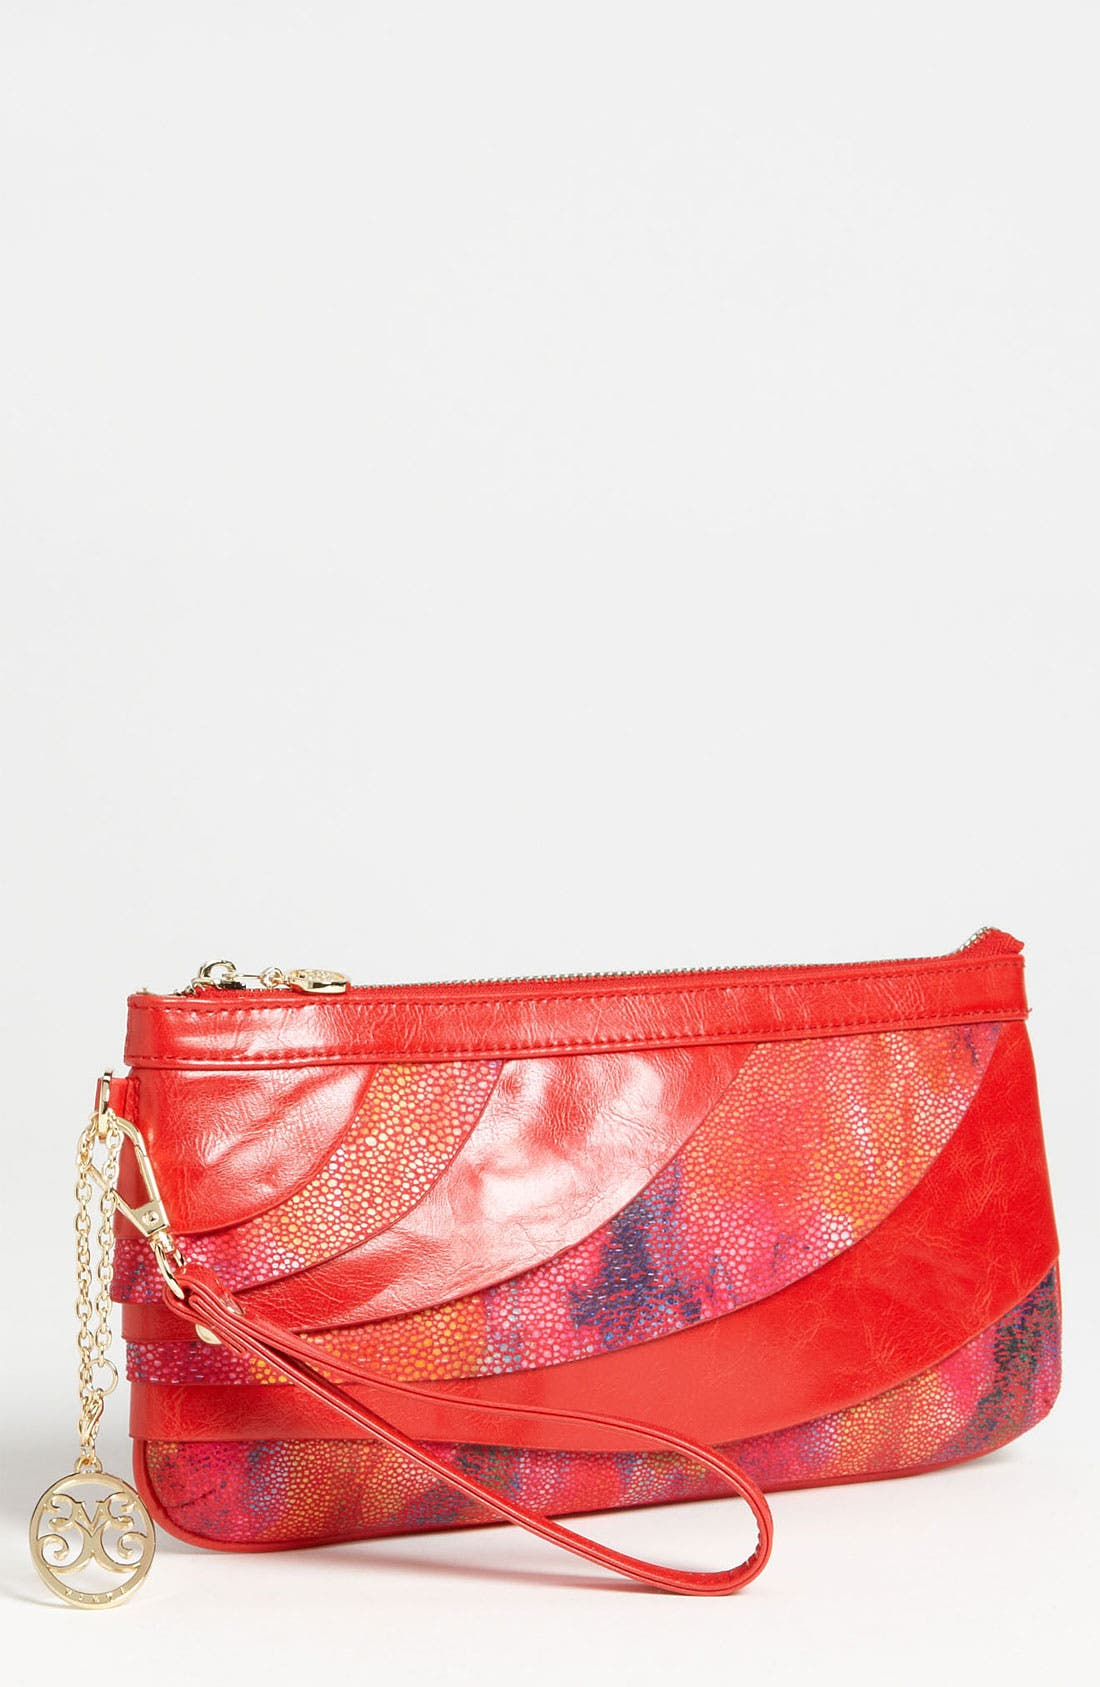 Alternate Image 1 Selected - Vieta 'Water Paint' Clutch